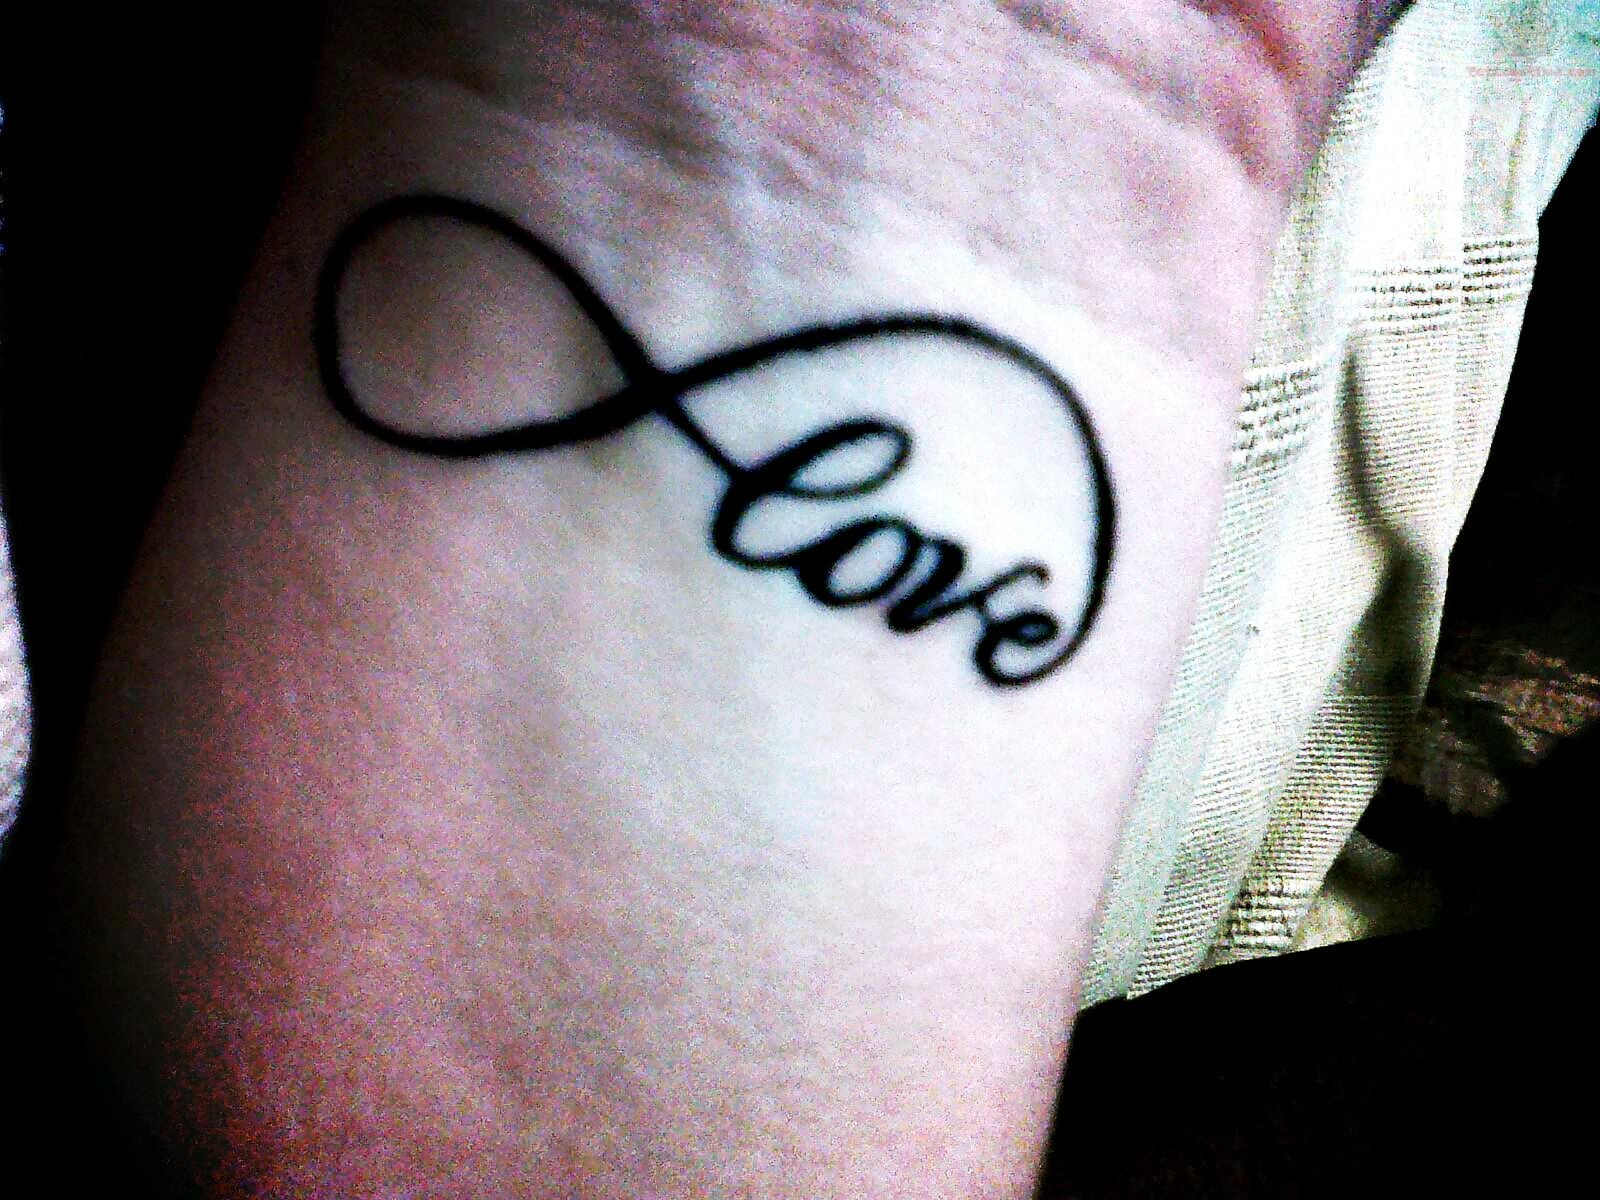 View More: Infinity Symbol Tattoos